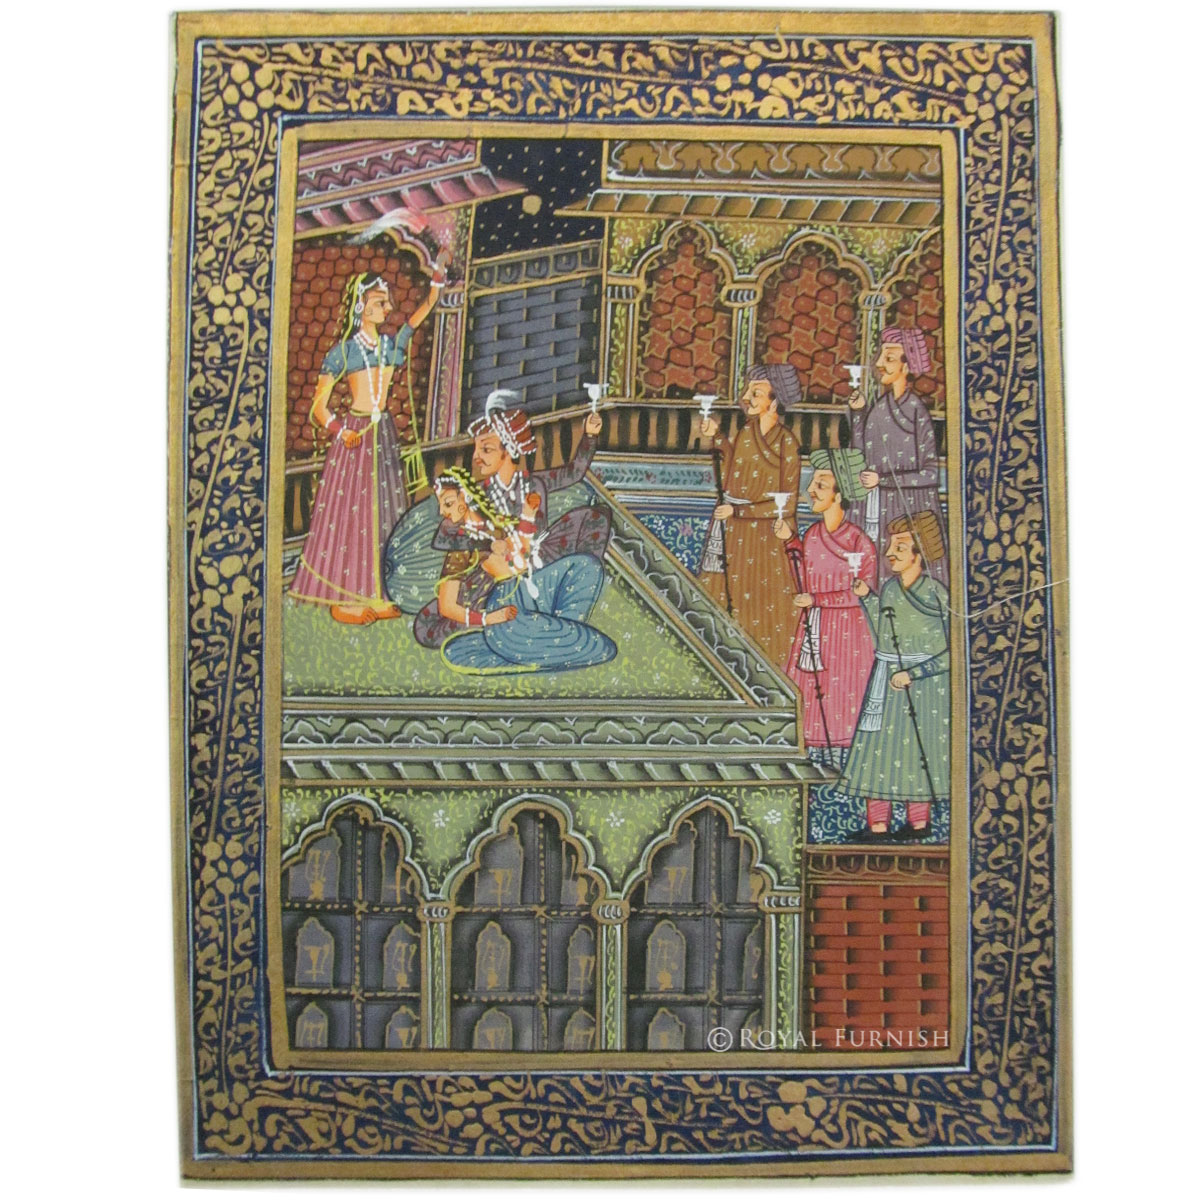 Indian mughal king love scene rajasthan miniature painting Home decor paintings for sale india